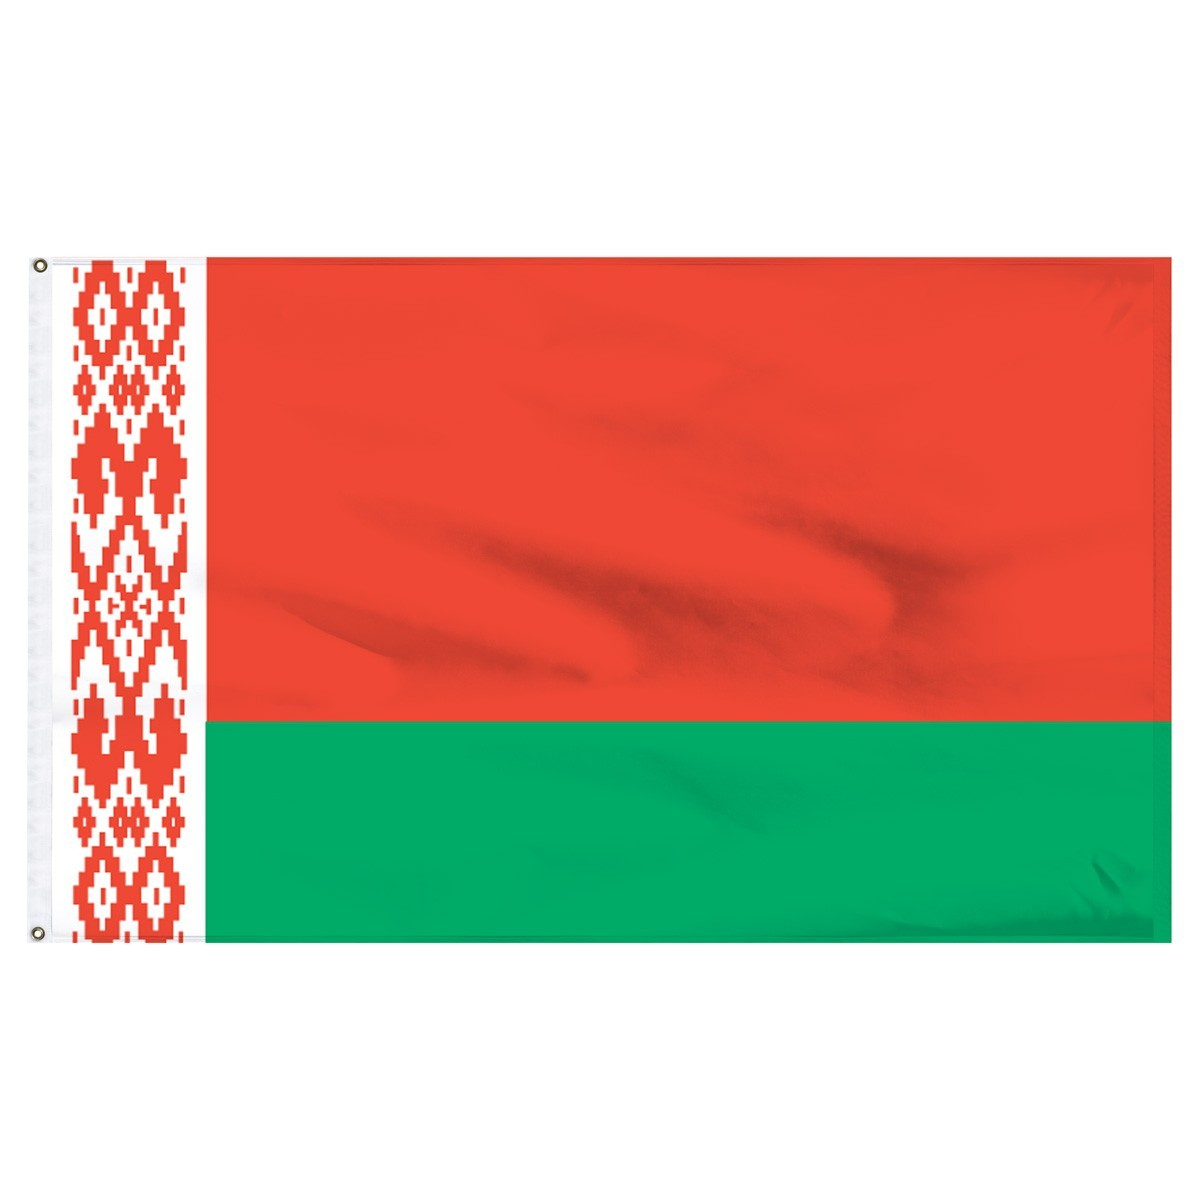 Belarus 3' x 5' Outdoor Nylon Country Flag